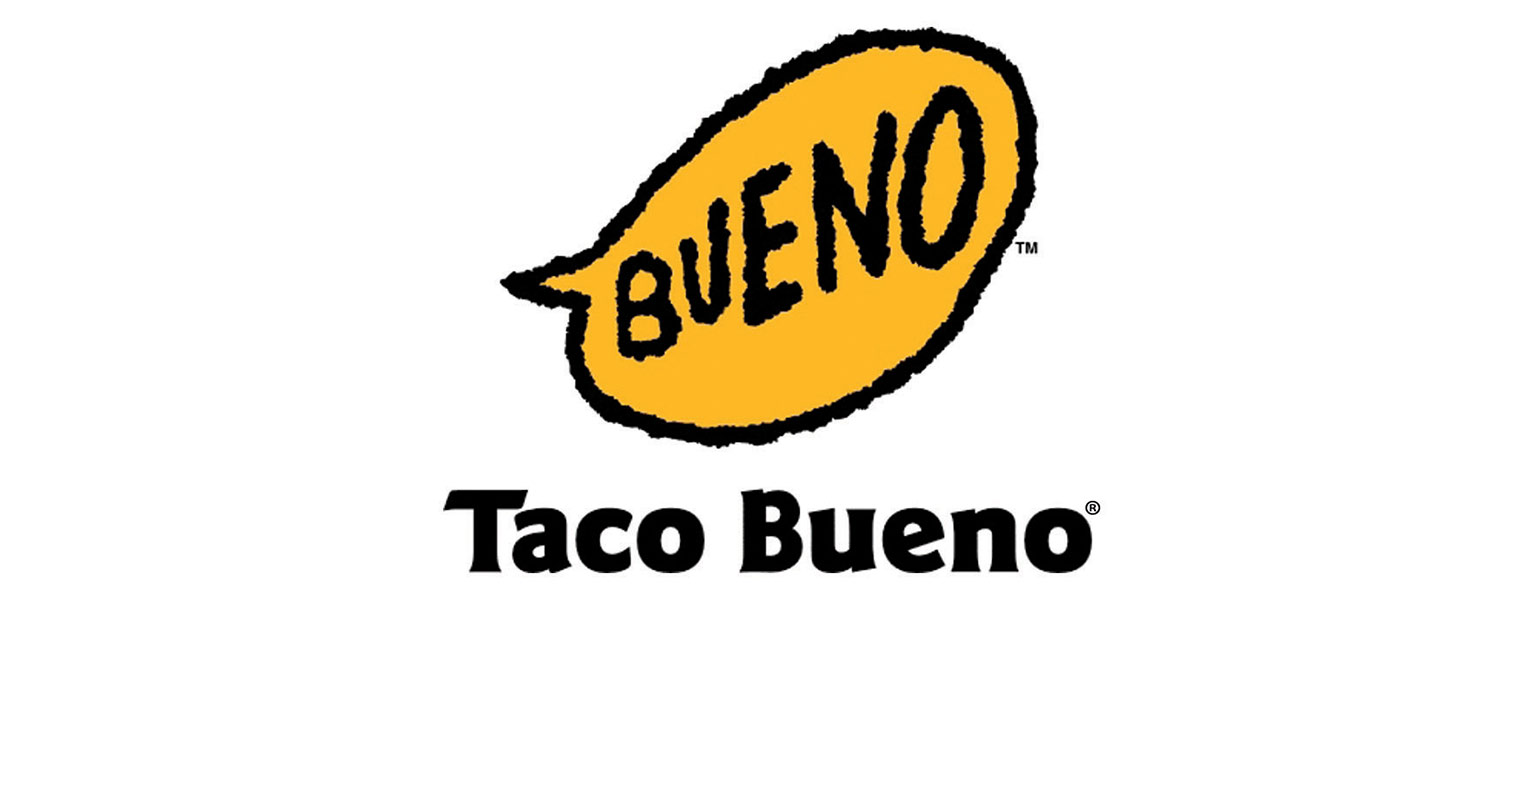 Taco Bueno files for Chapter 11 bankruptcy protection